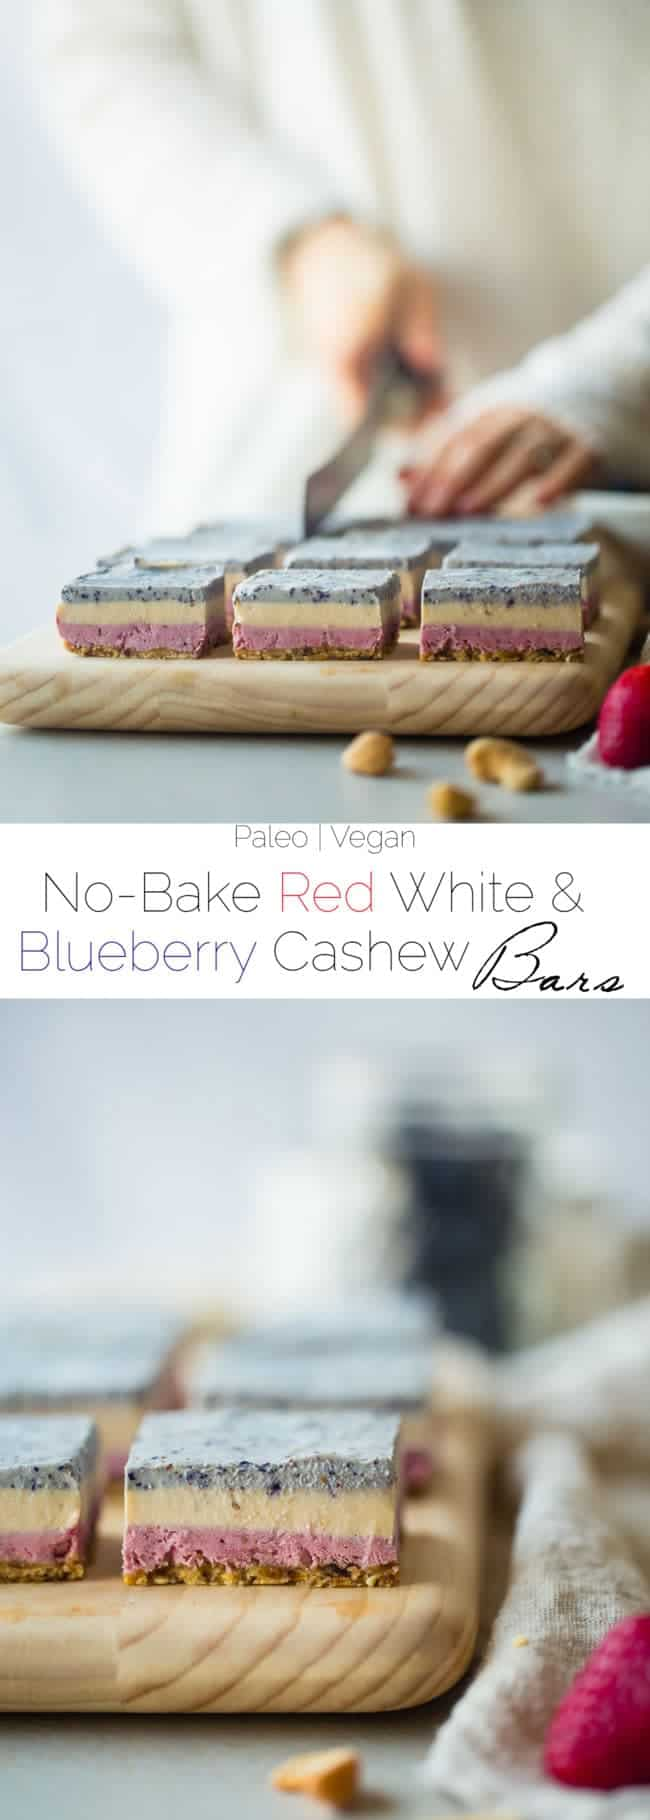 Vegan No Bake Red, White and Blueberry Cashew Cream Bars - These healthy bars are made of berry cashew cream, layered and then frozen! They're an easy, paleo and vegan friendly dessert for the fourth of July! | Foodfaithfitness.com | @FoodFaithFit